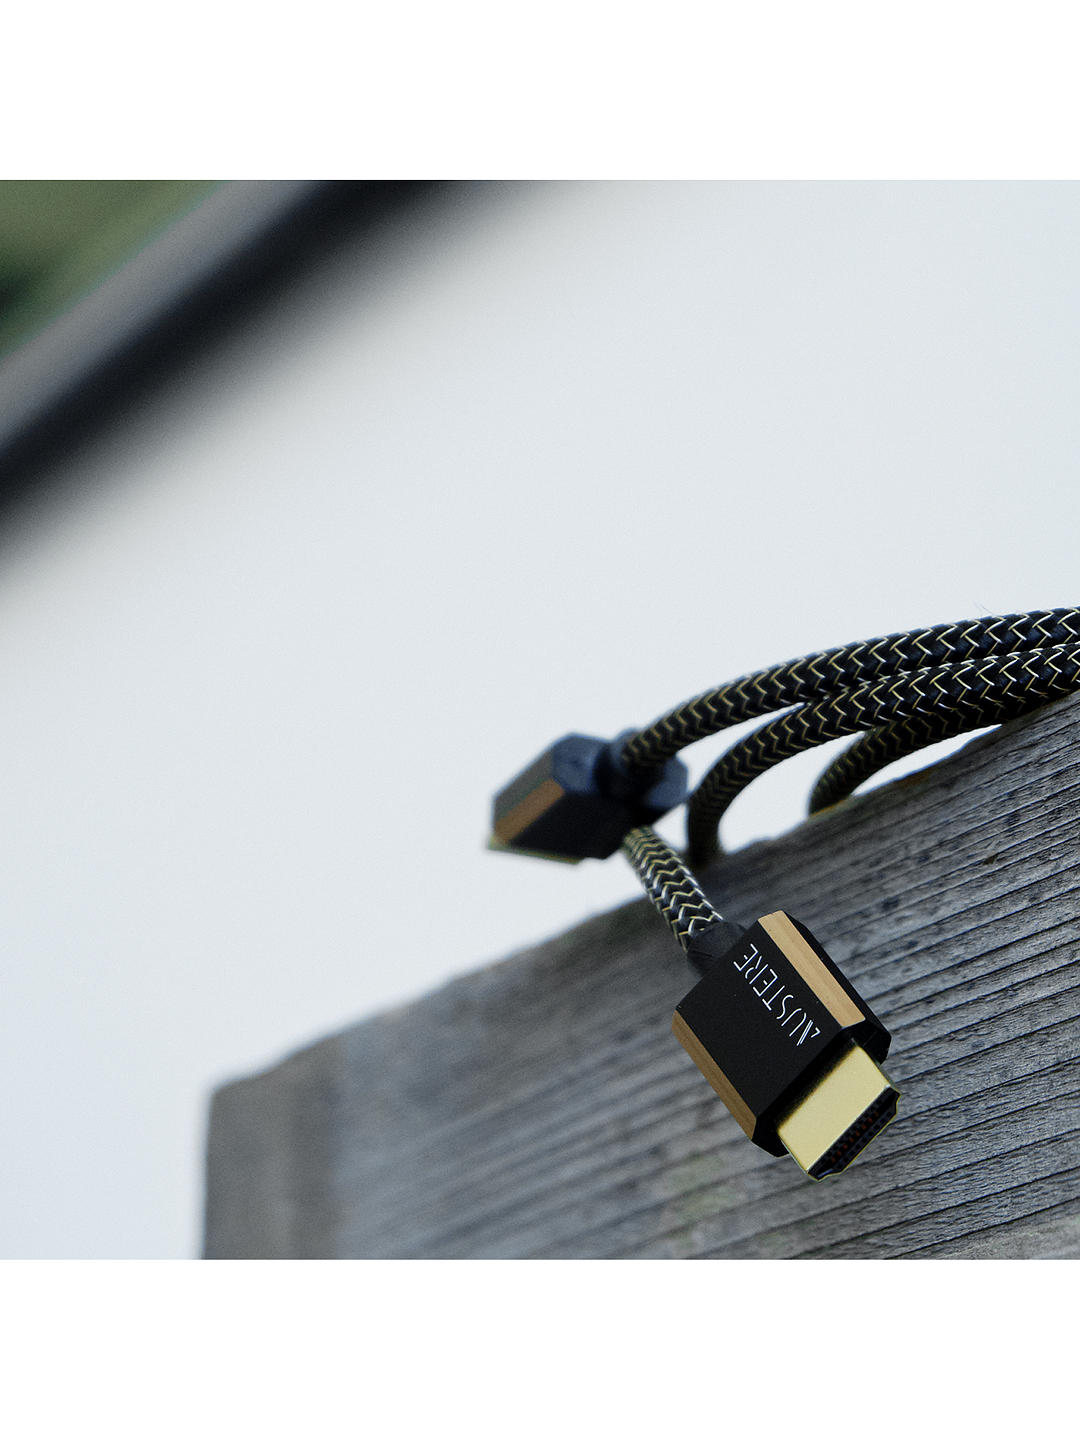 Austere III (3) Series 4K 5m HDMI Cable